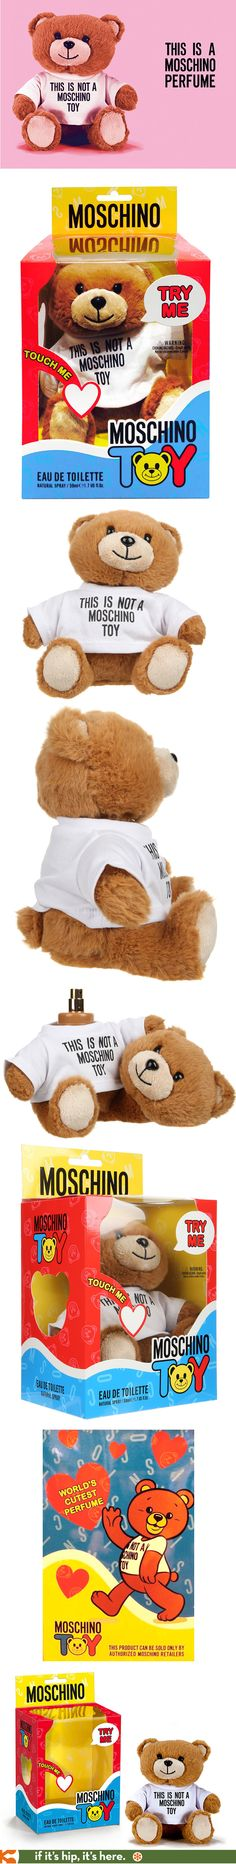 Moschino TOY by Jeremy Scott is not a toy, but a fragrance that is placed inside a plush teddy bear whose head is removable.